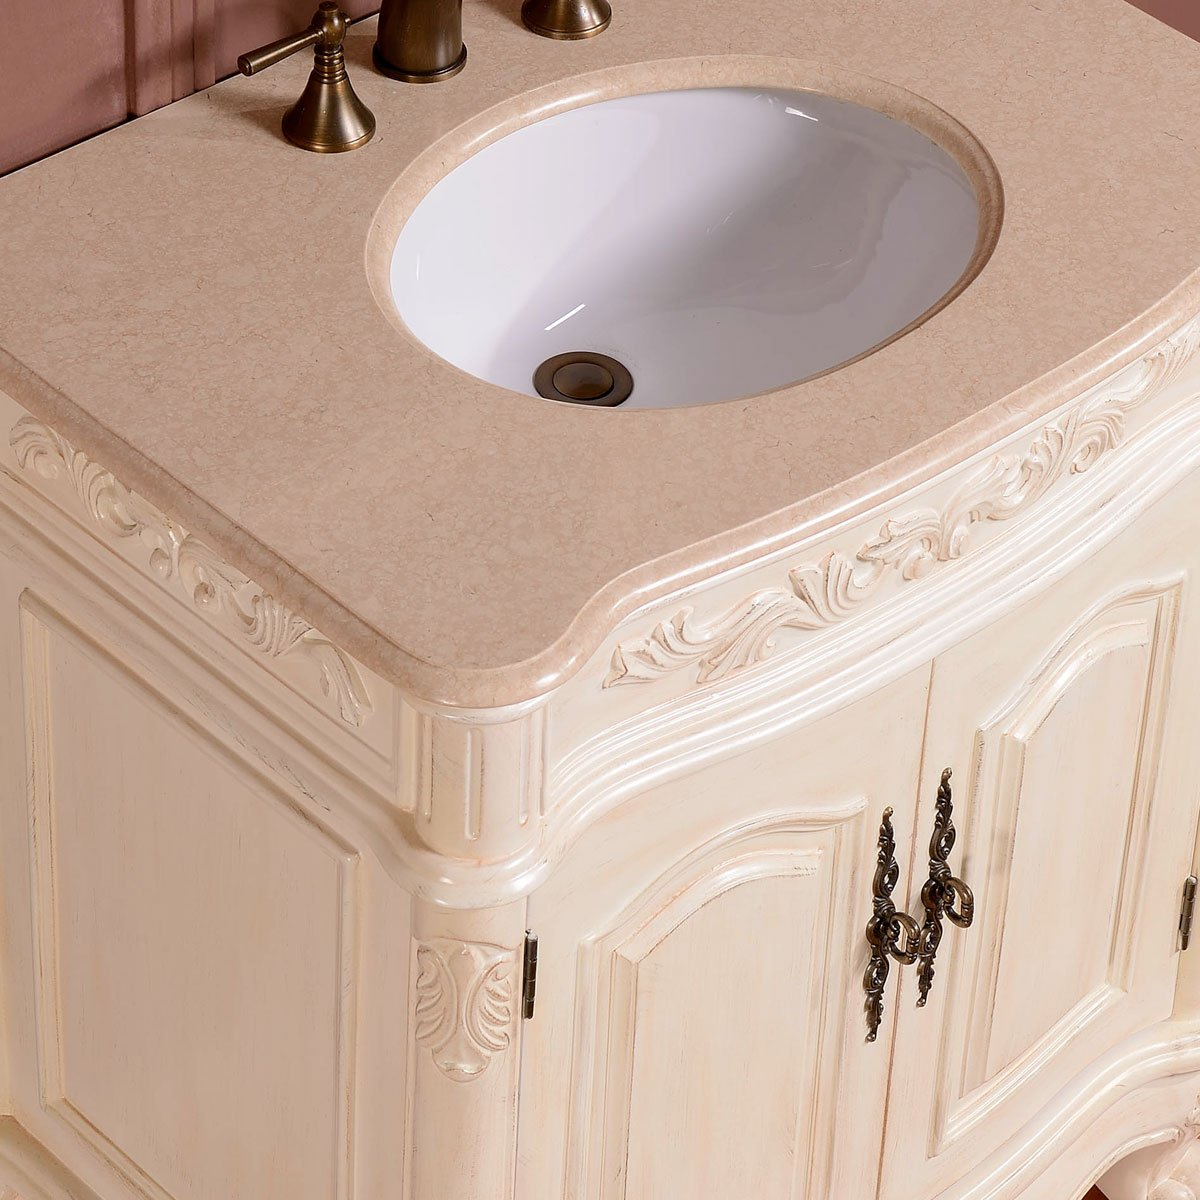 Silkroad Exclusive Marble Stone Top Single Sink Bathroom Vanity with White Oak Finish Cabinet, 32-Inch 4